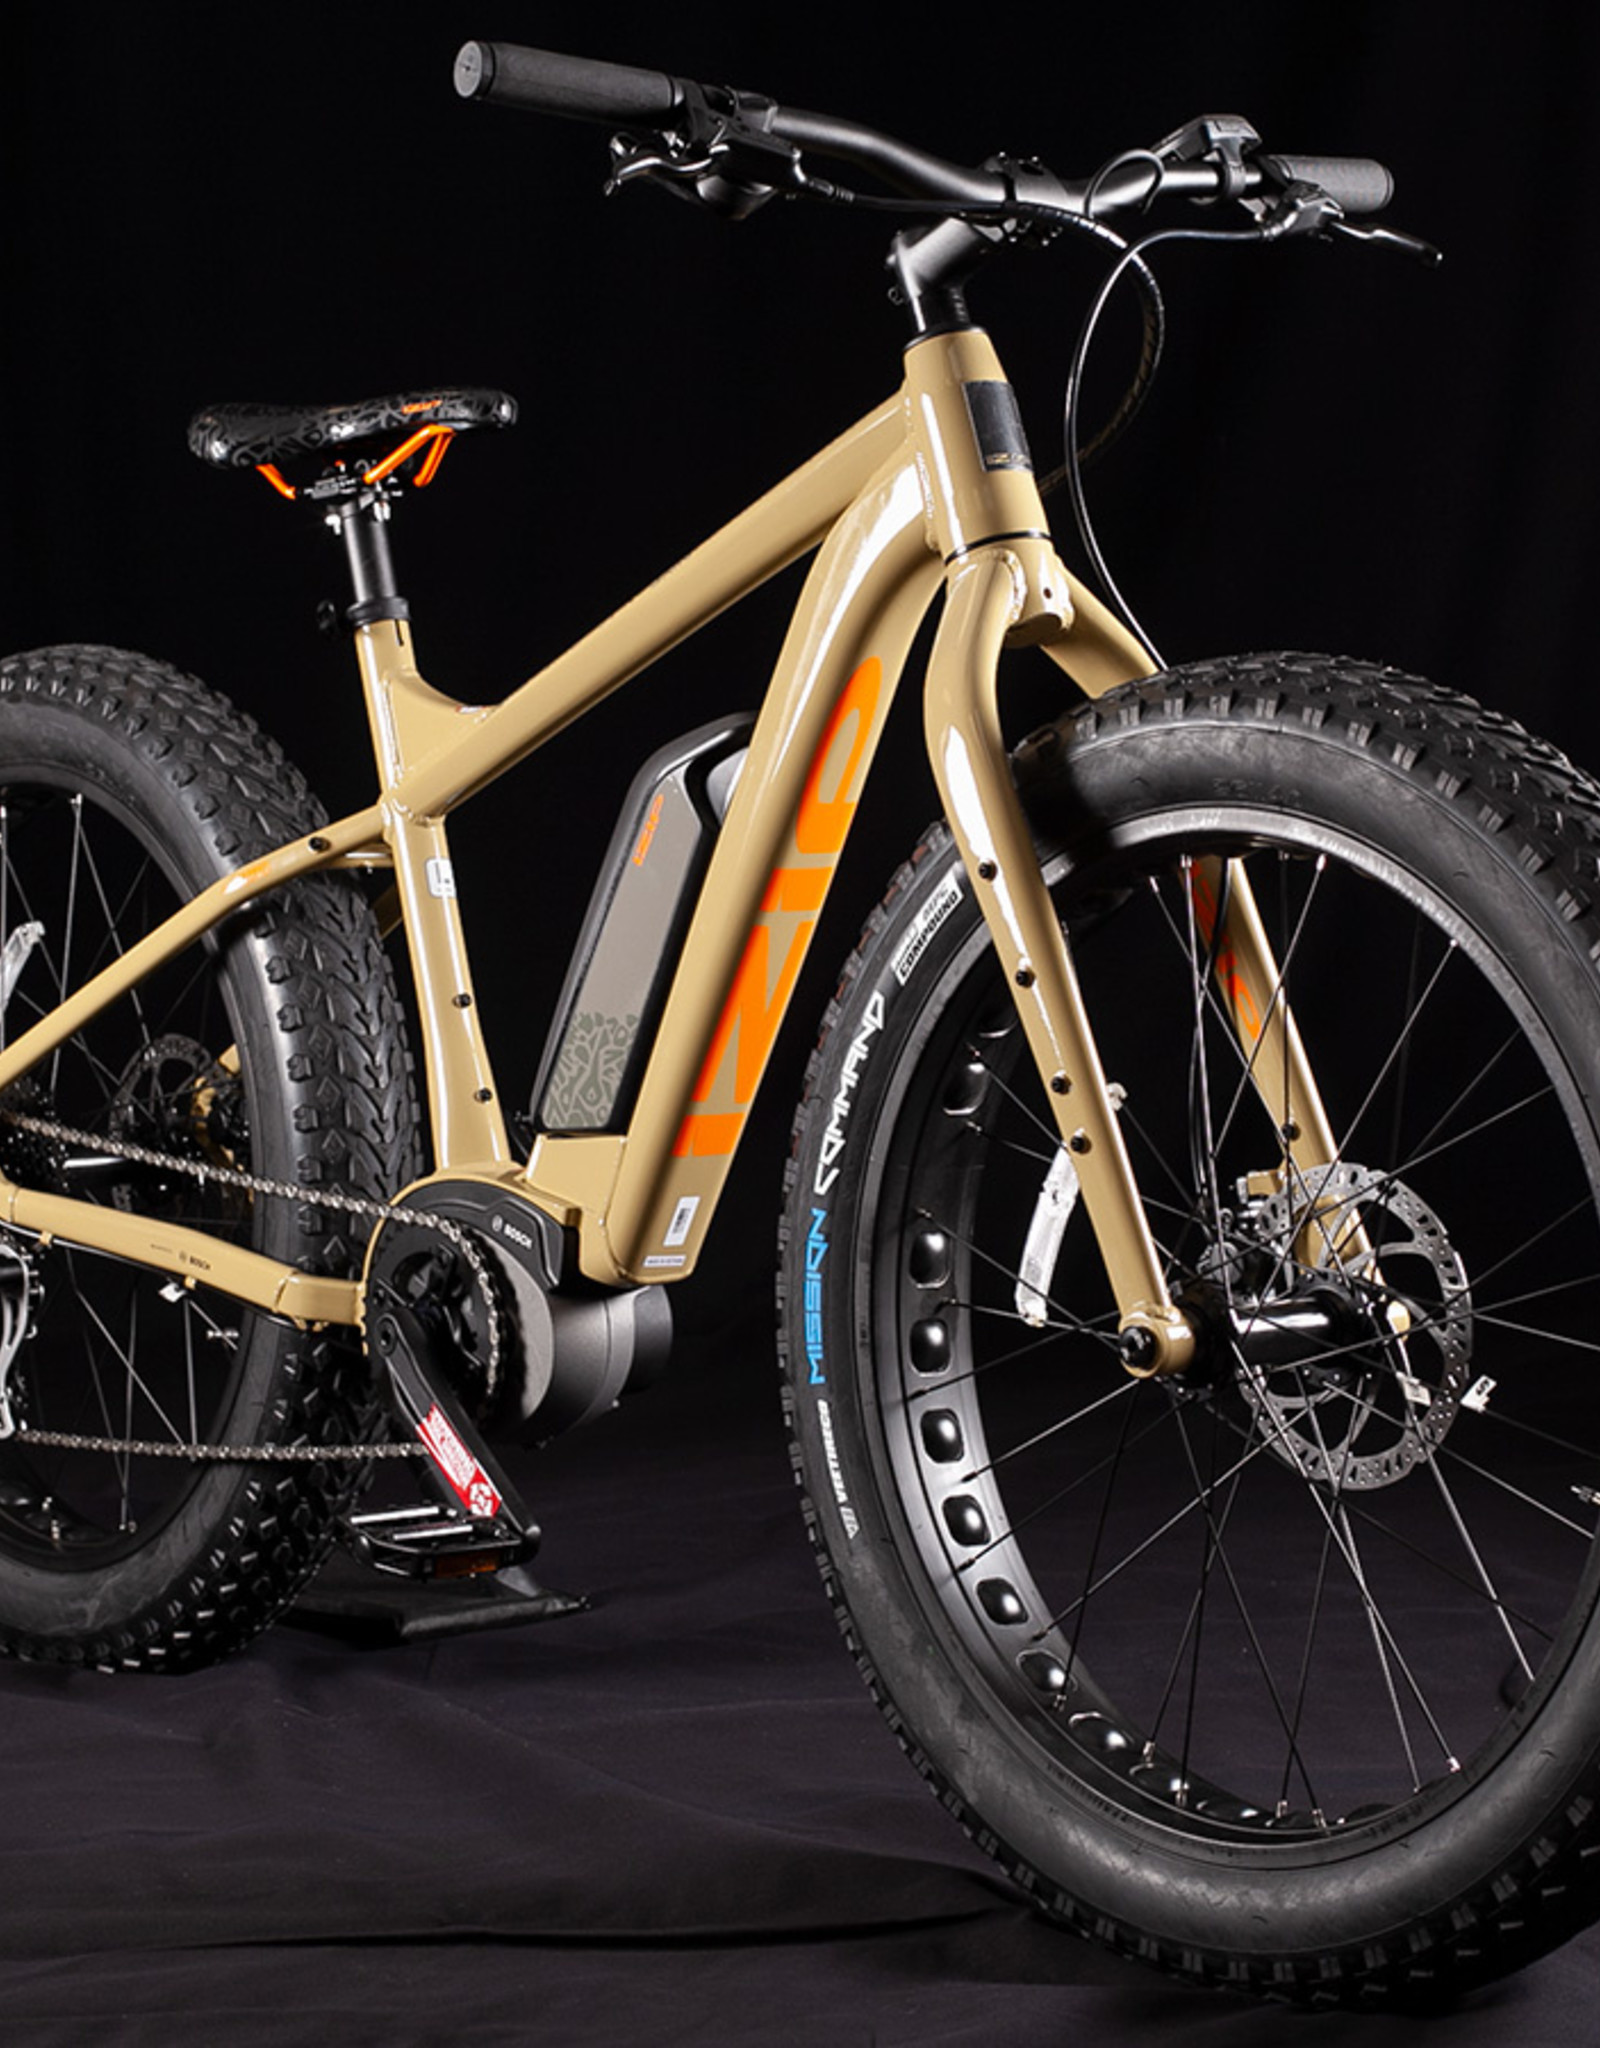 2020 IZIP Sumo Electric Fat Bike E-Bike, SUPER LOW MILES, Size Medium